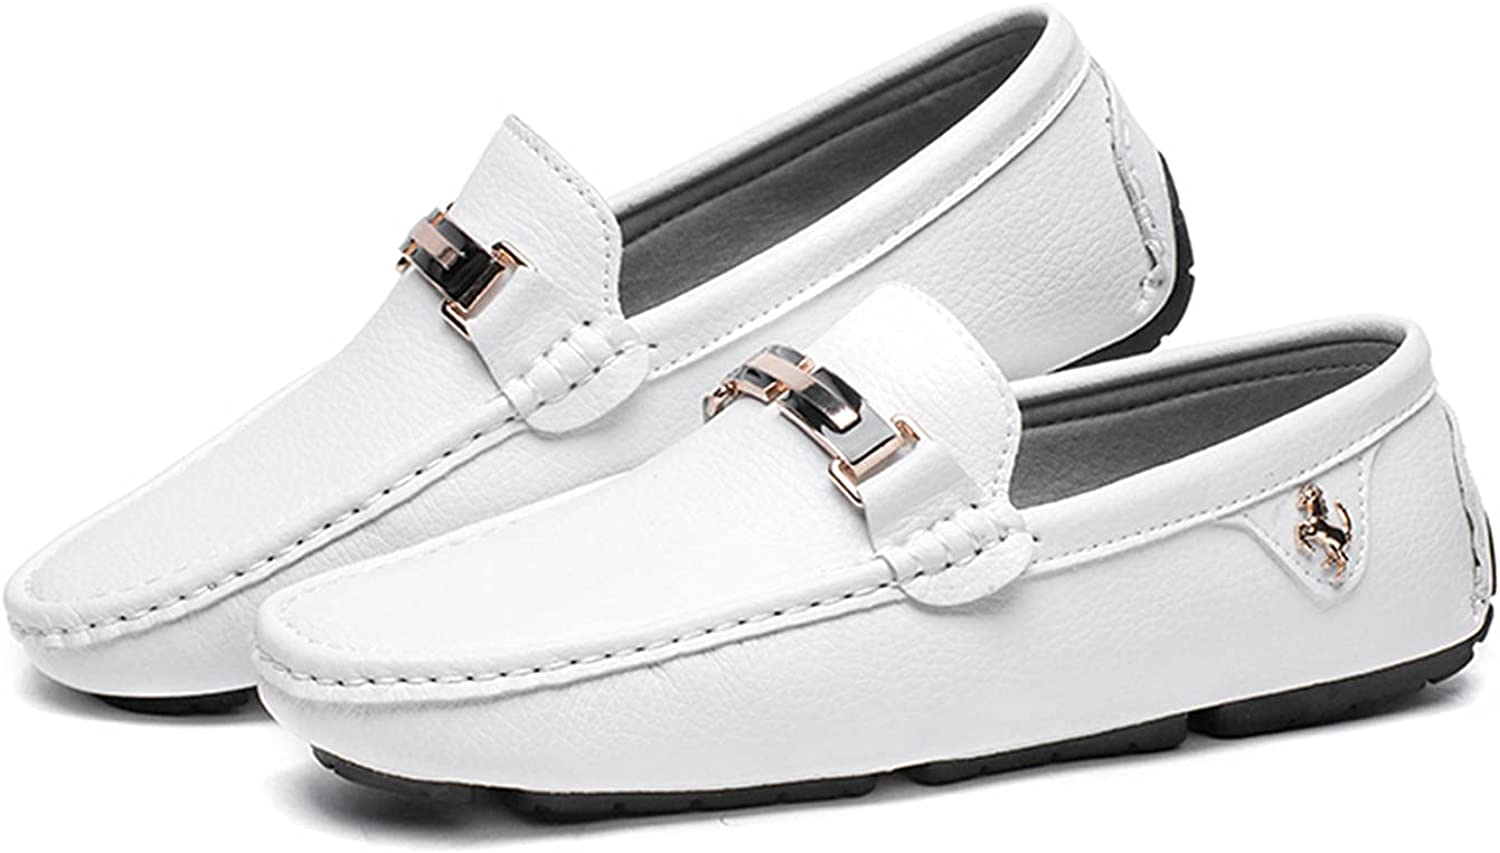 Men's One-Step Popular products Loafers Casual Open Max 65% OFF Slippers Smoking Fashion Back